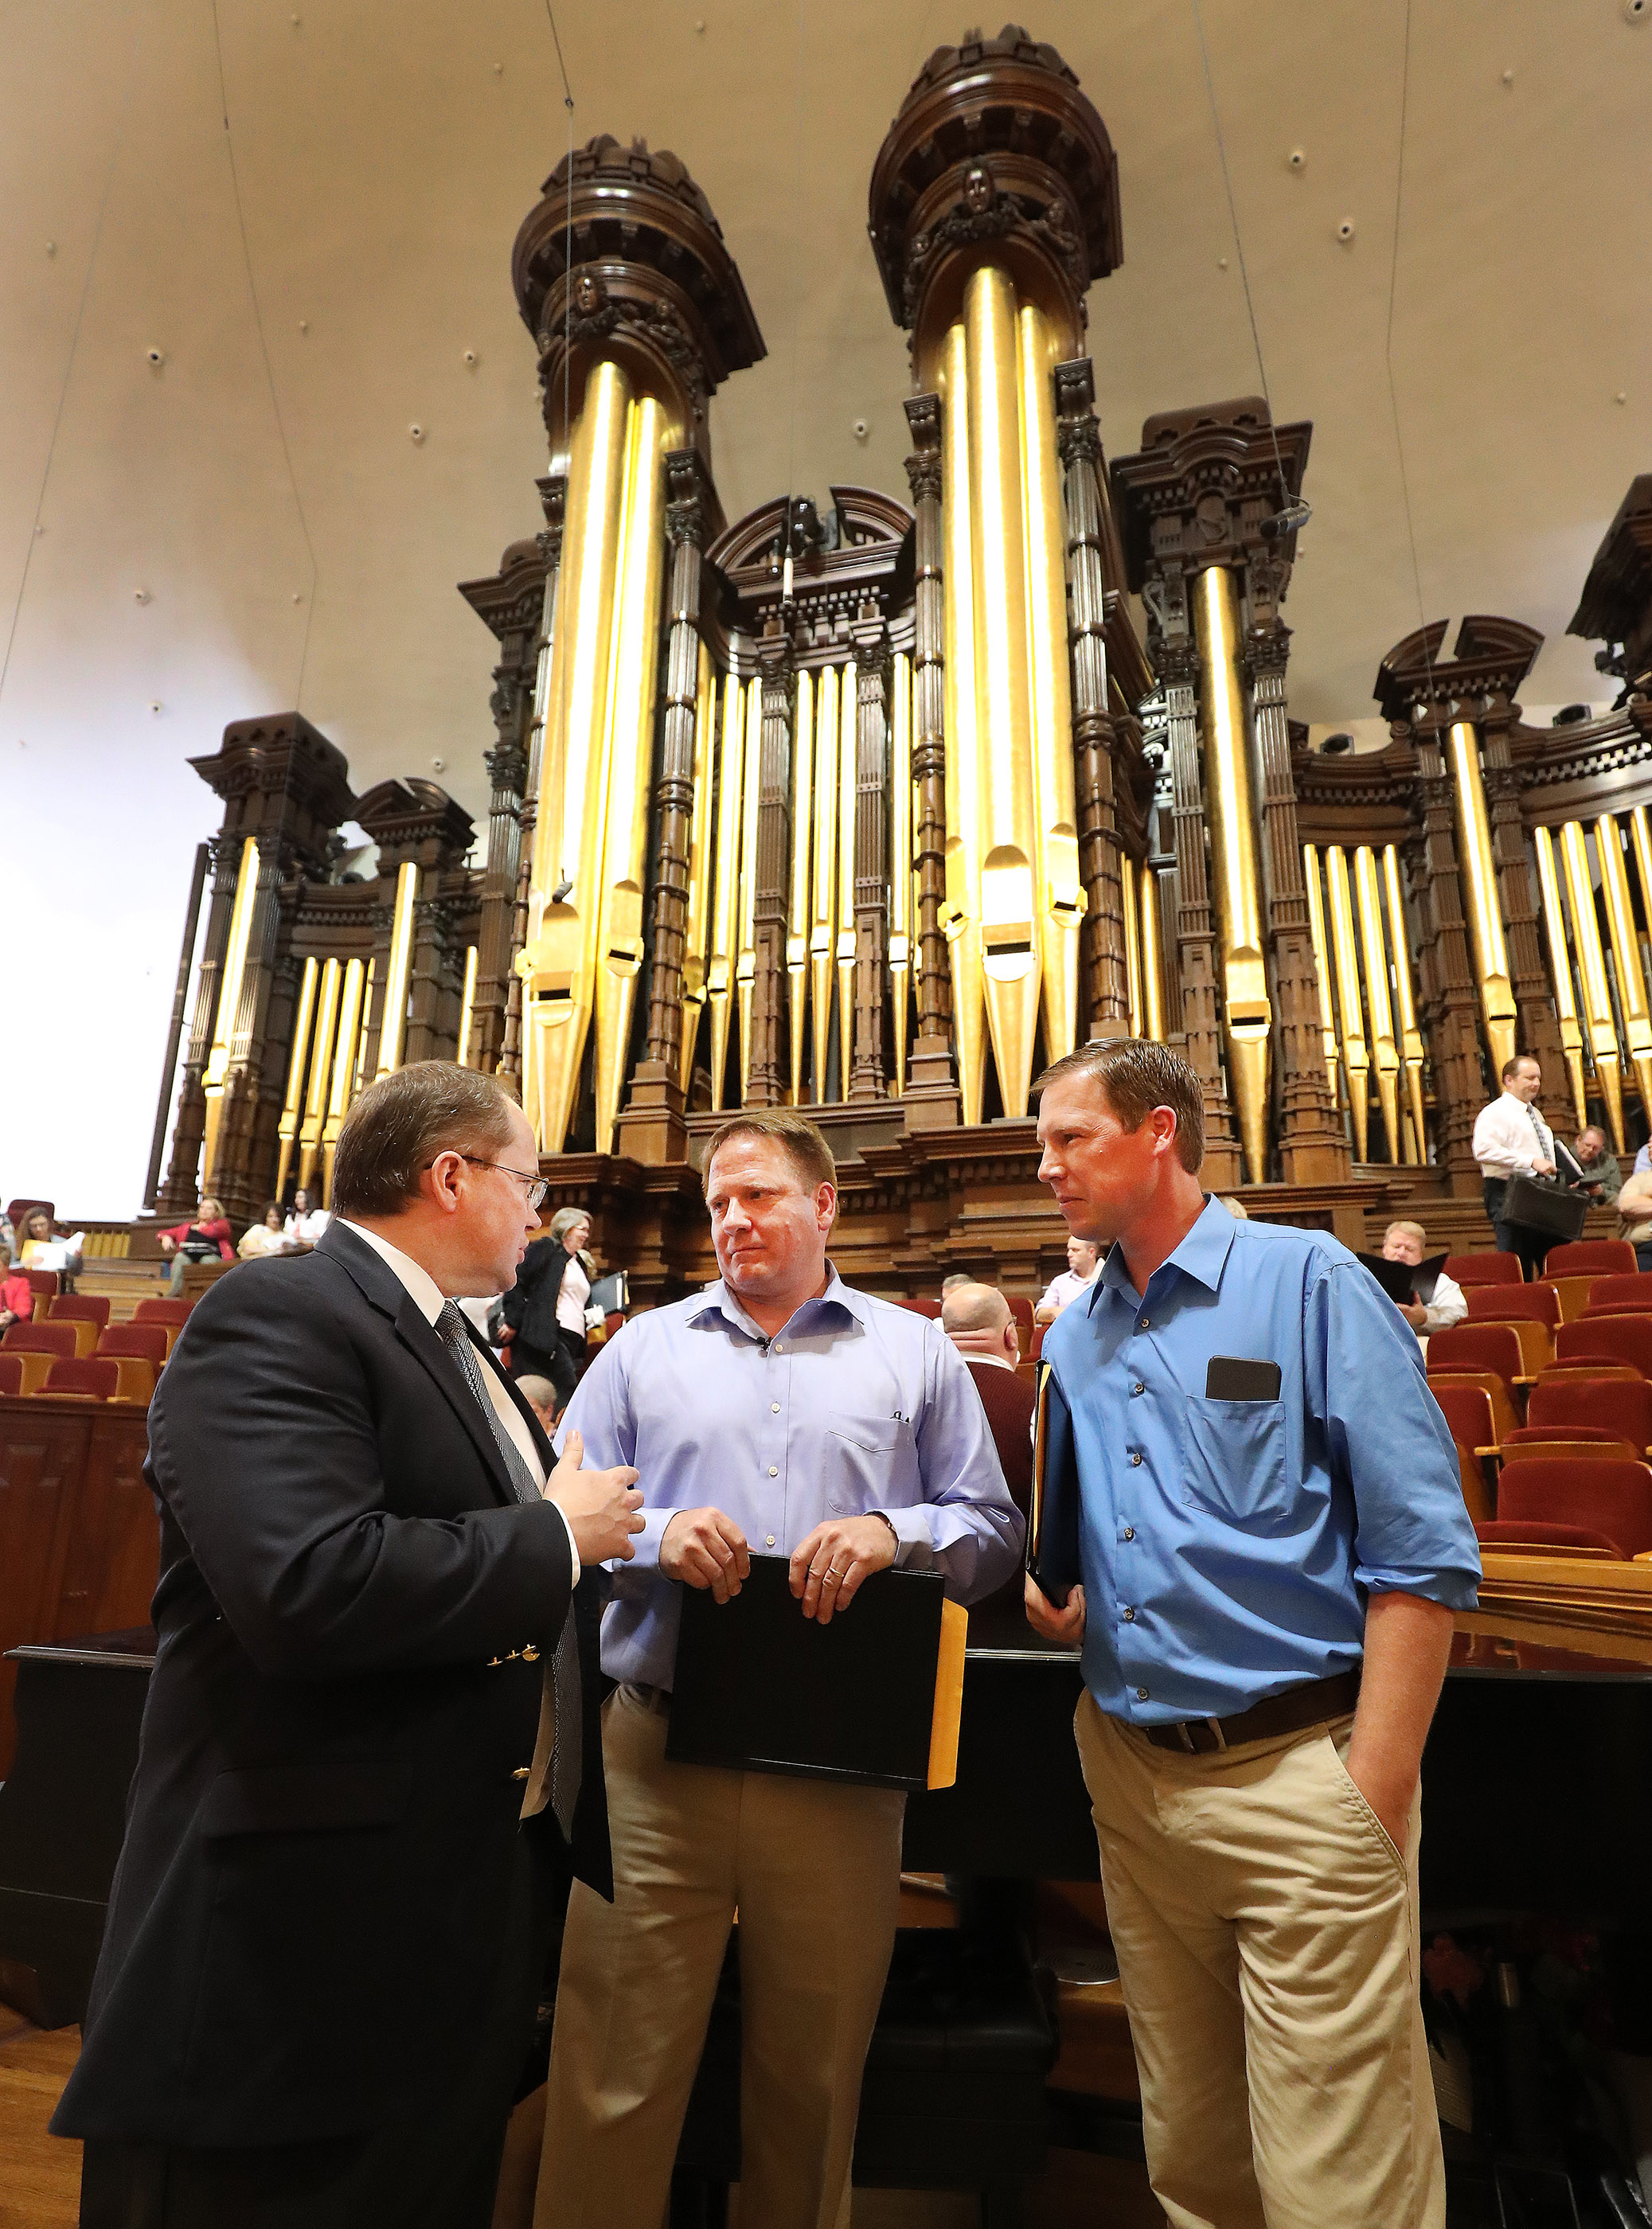 Choir member David Stevenson, left, talks with Daniel Wilson and Matt Breshears in preparation to sing with The Tabernacle Choir at Temple Square during a rehearsal in Salt Lake City on Thursday, April 11, 2019. Four people were selected through social media to sing with the choir.